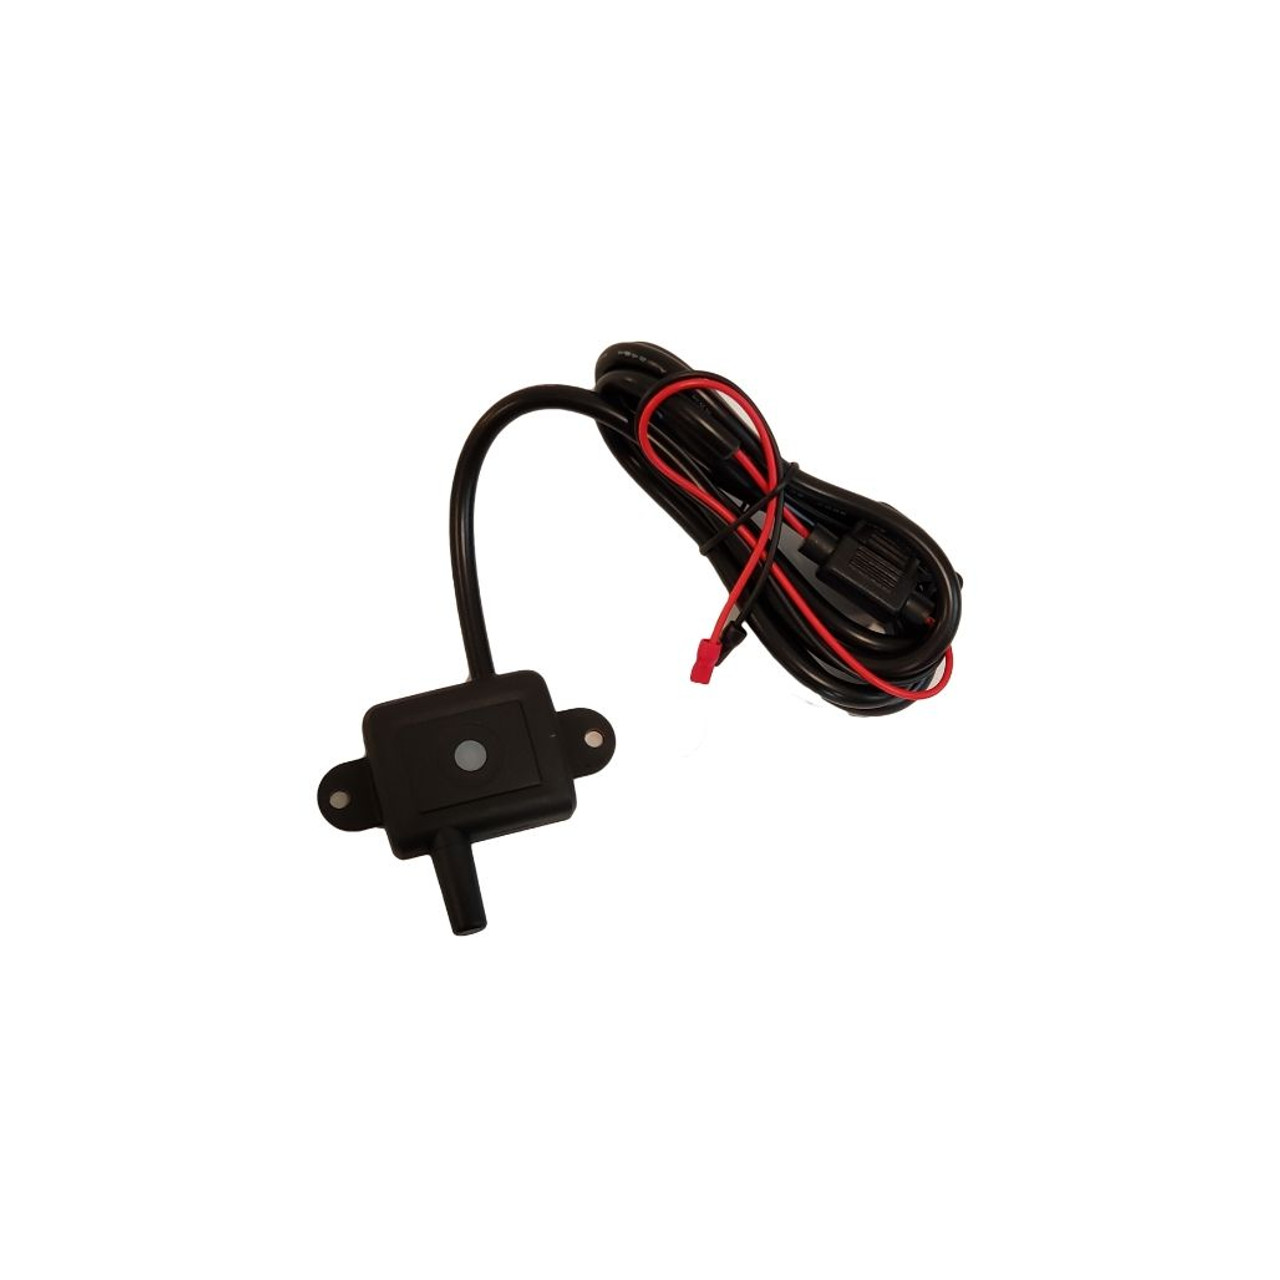 TST 507 TPMS with CAP Sensors (10) and Repeater